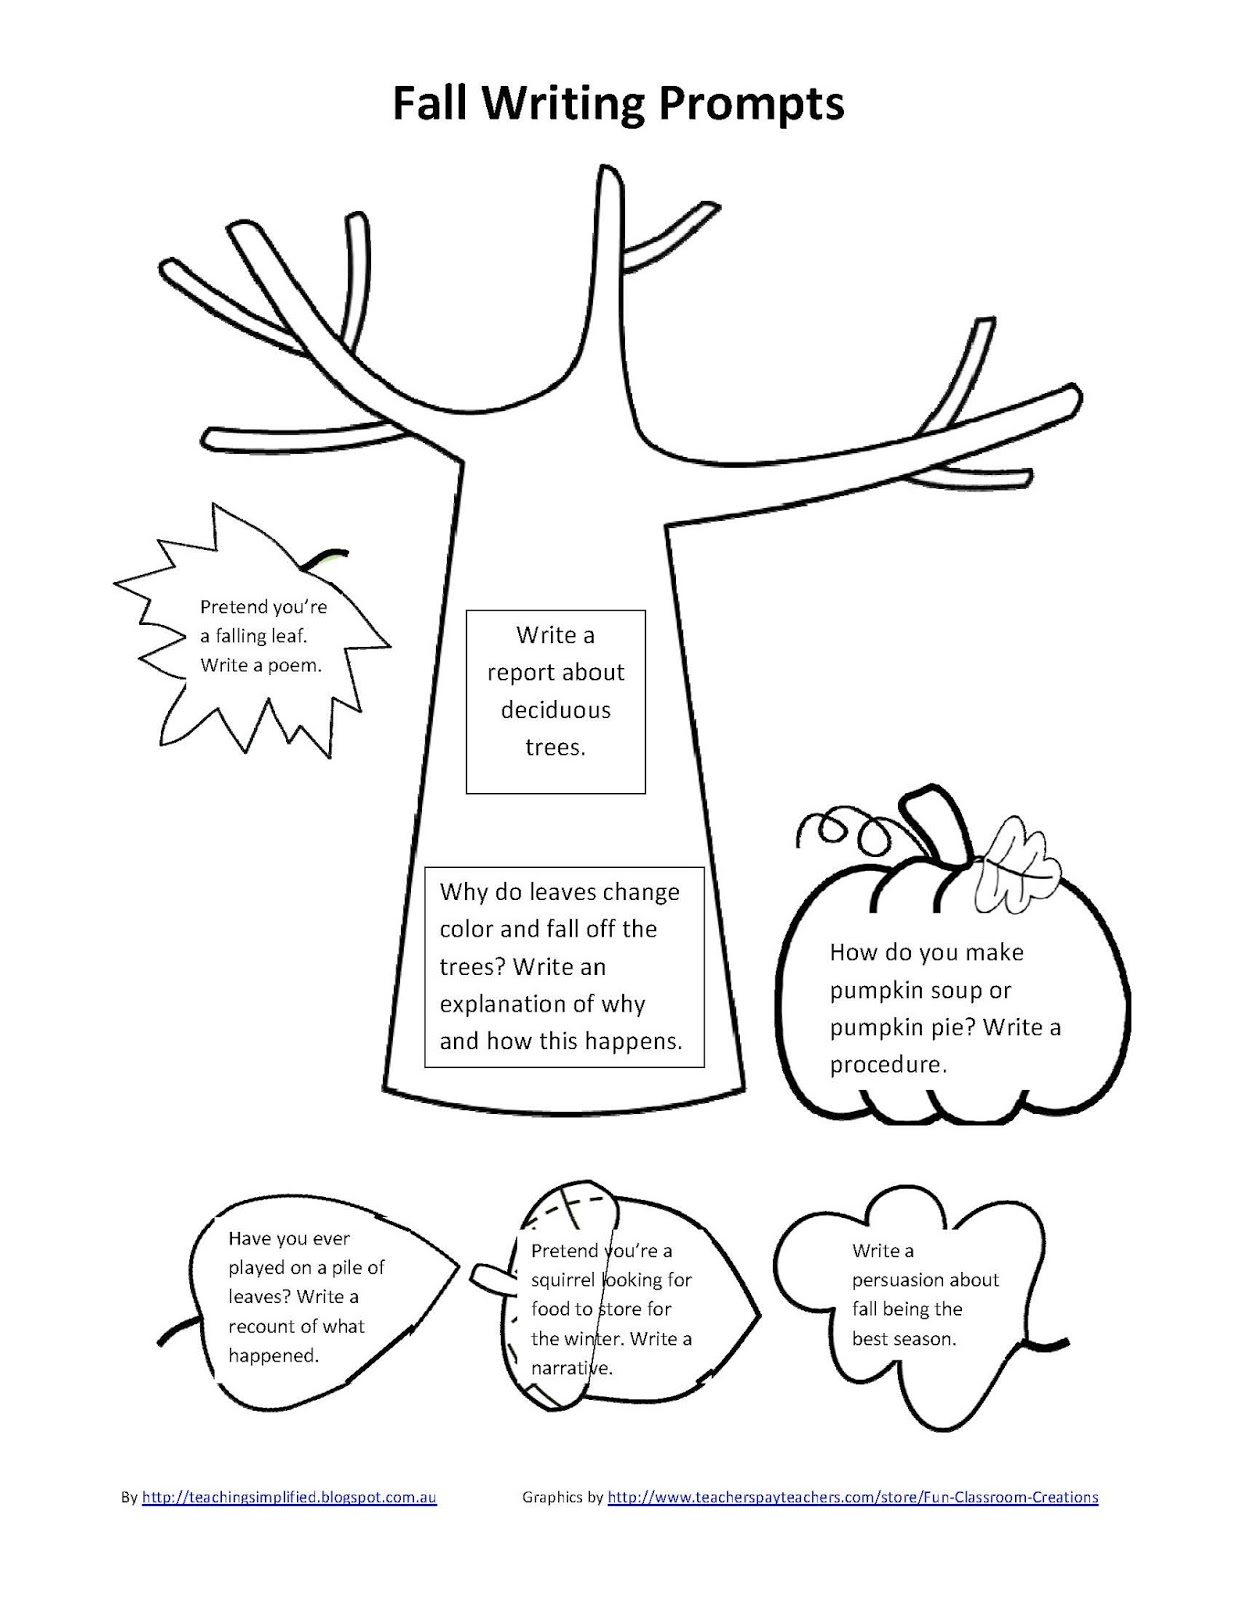 Kind Parenting: Free Download: Spring and Autumn (Fall) Writing ...